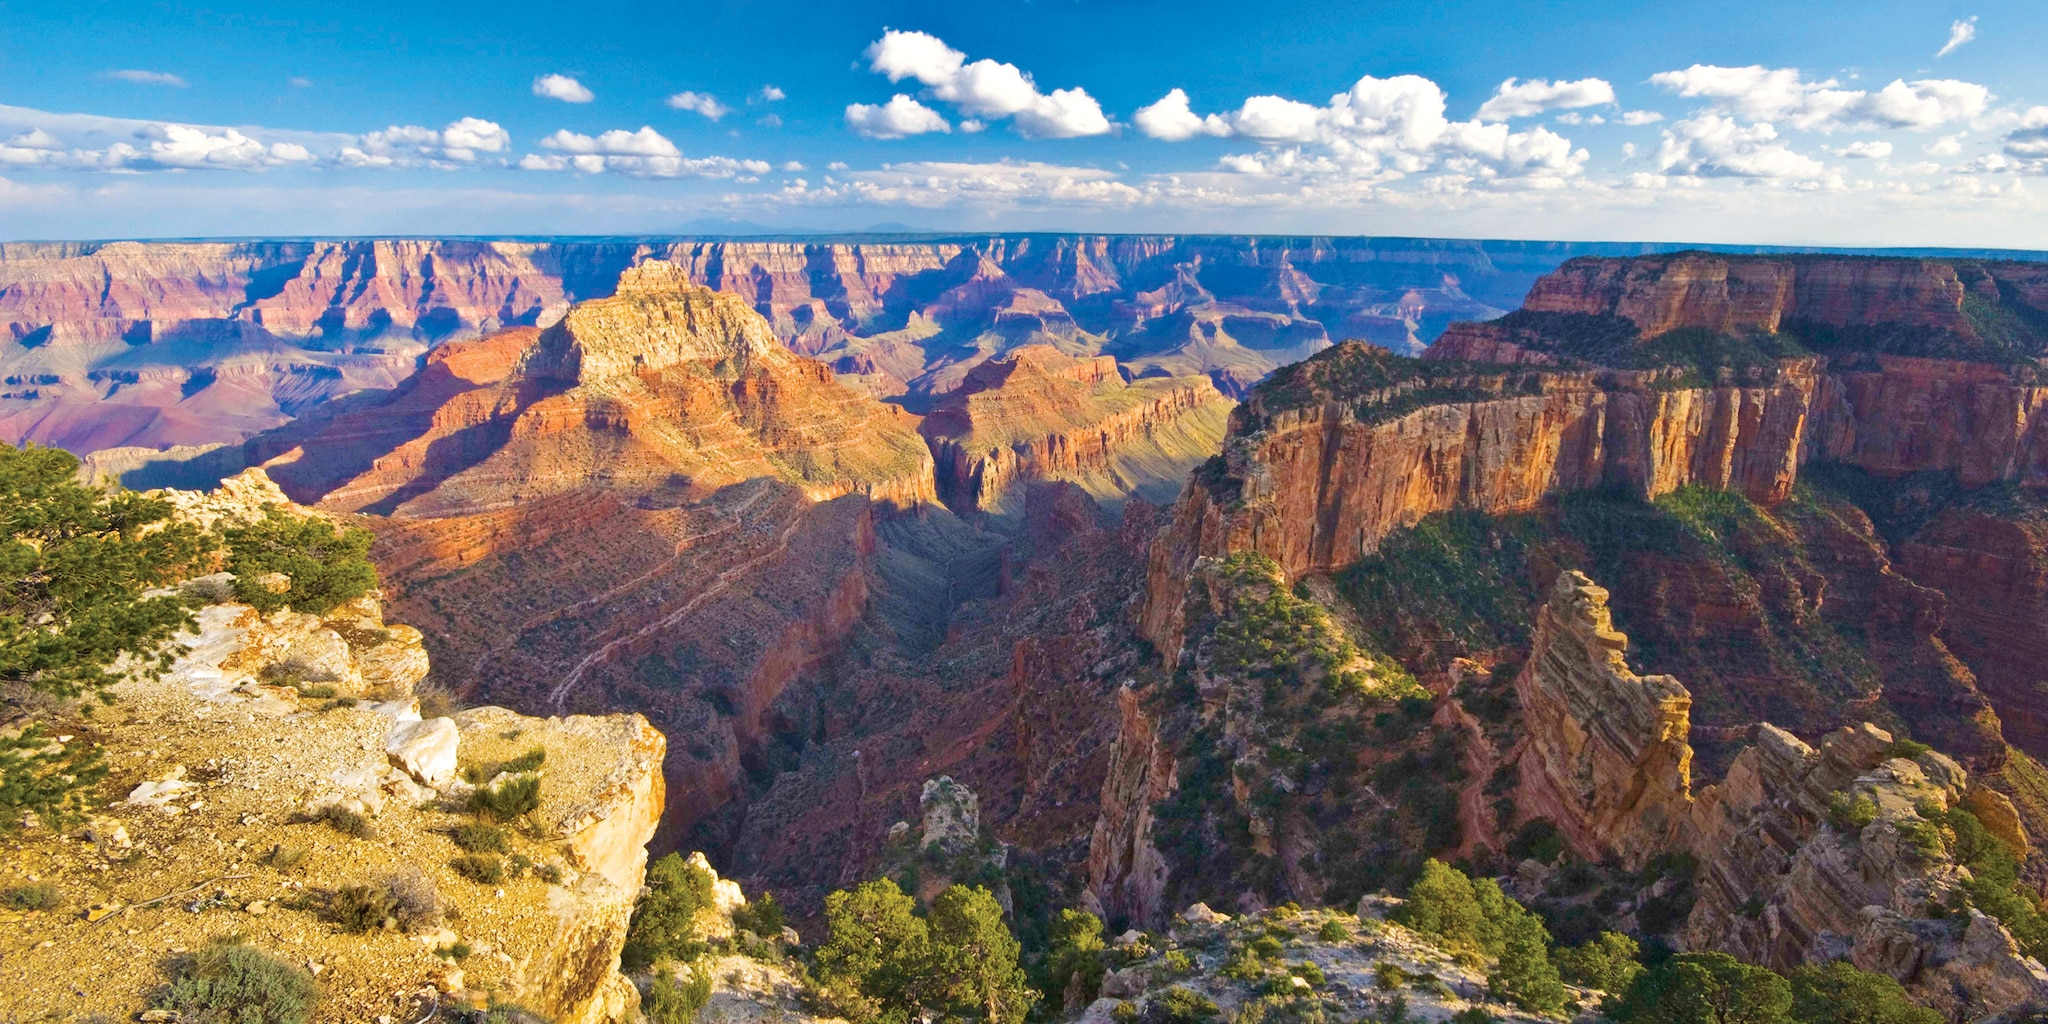 The panoramic landscape of the Grand Canyon's South Rim